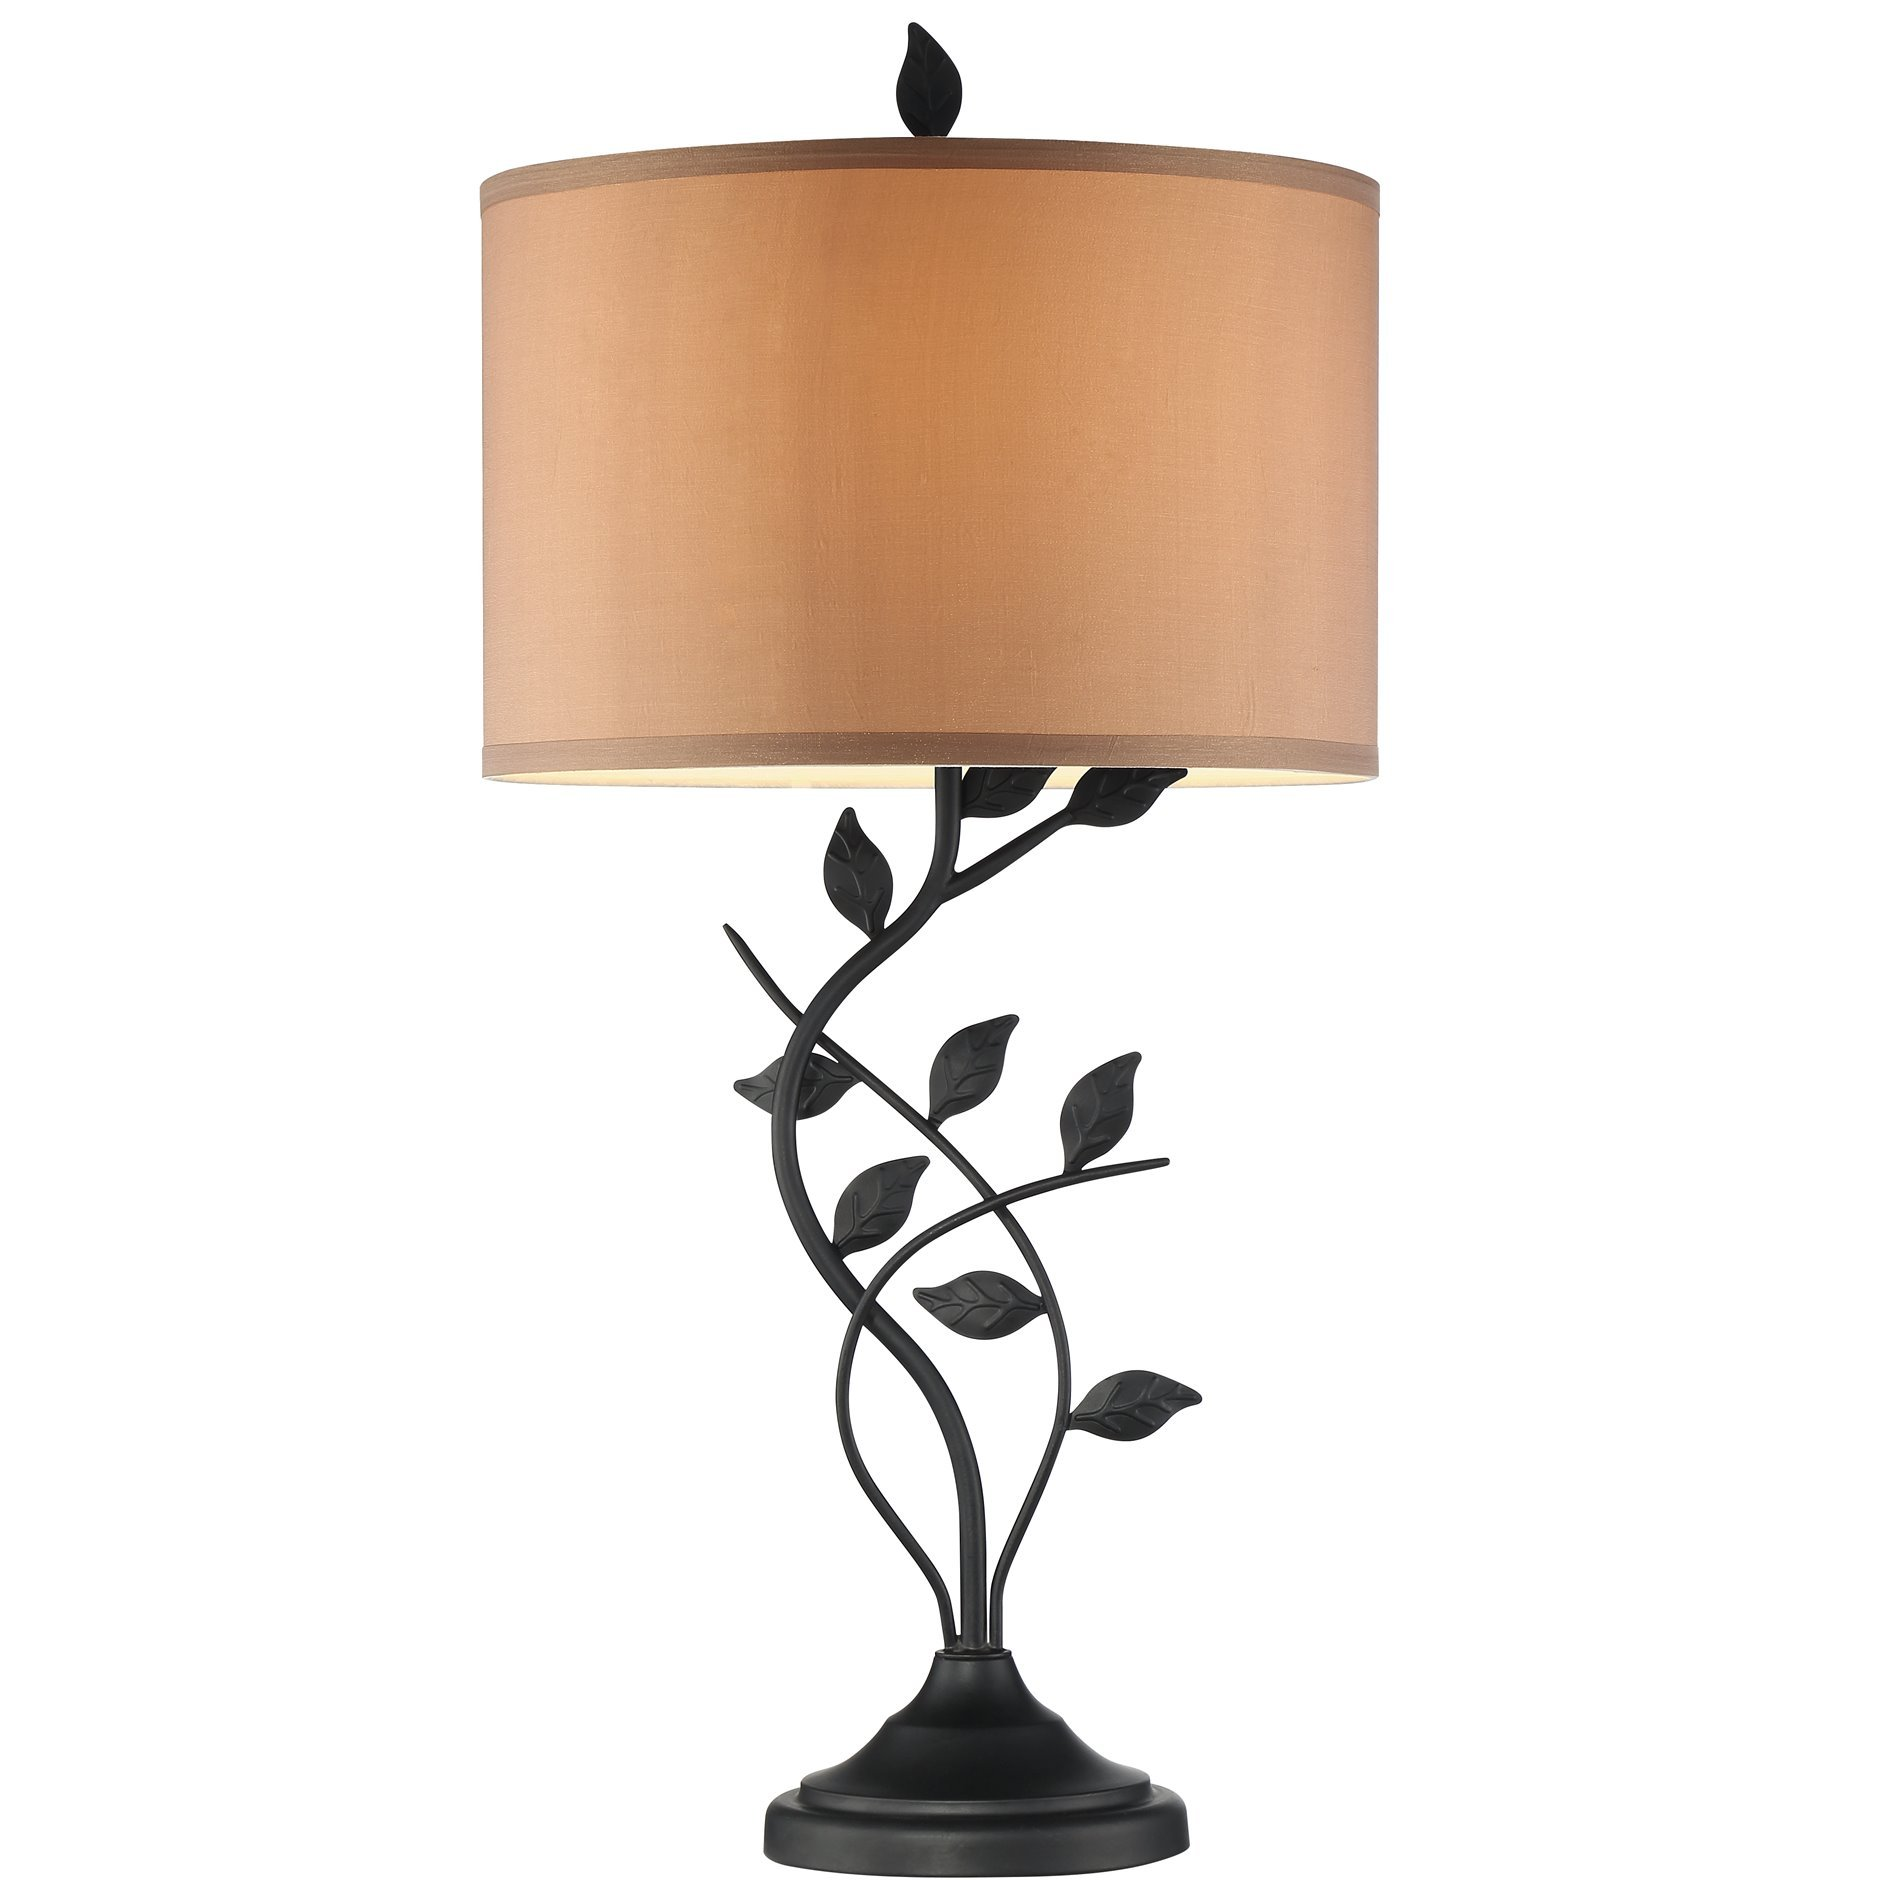 Revel Ambrose 30'' Matte Black Table Lamp + 6W LED Bulb, Energy Efficient, Eco-Friendly, Intricate Leafs Design, Gold Bronze Shade